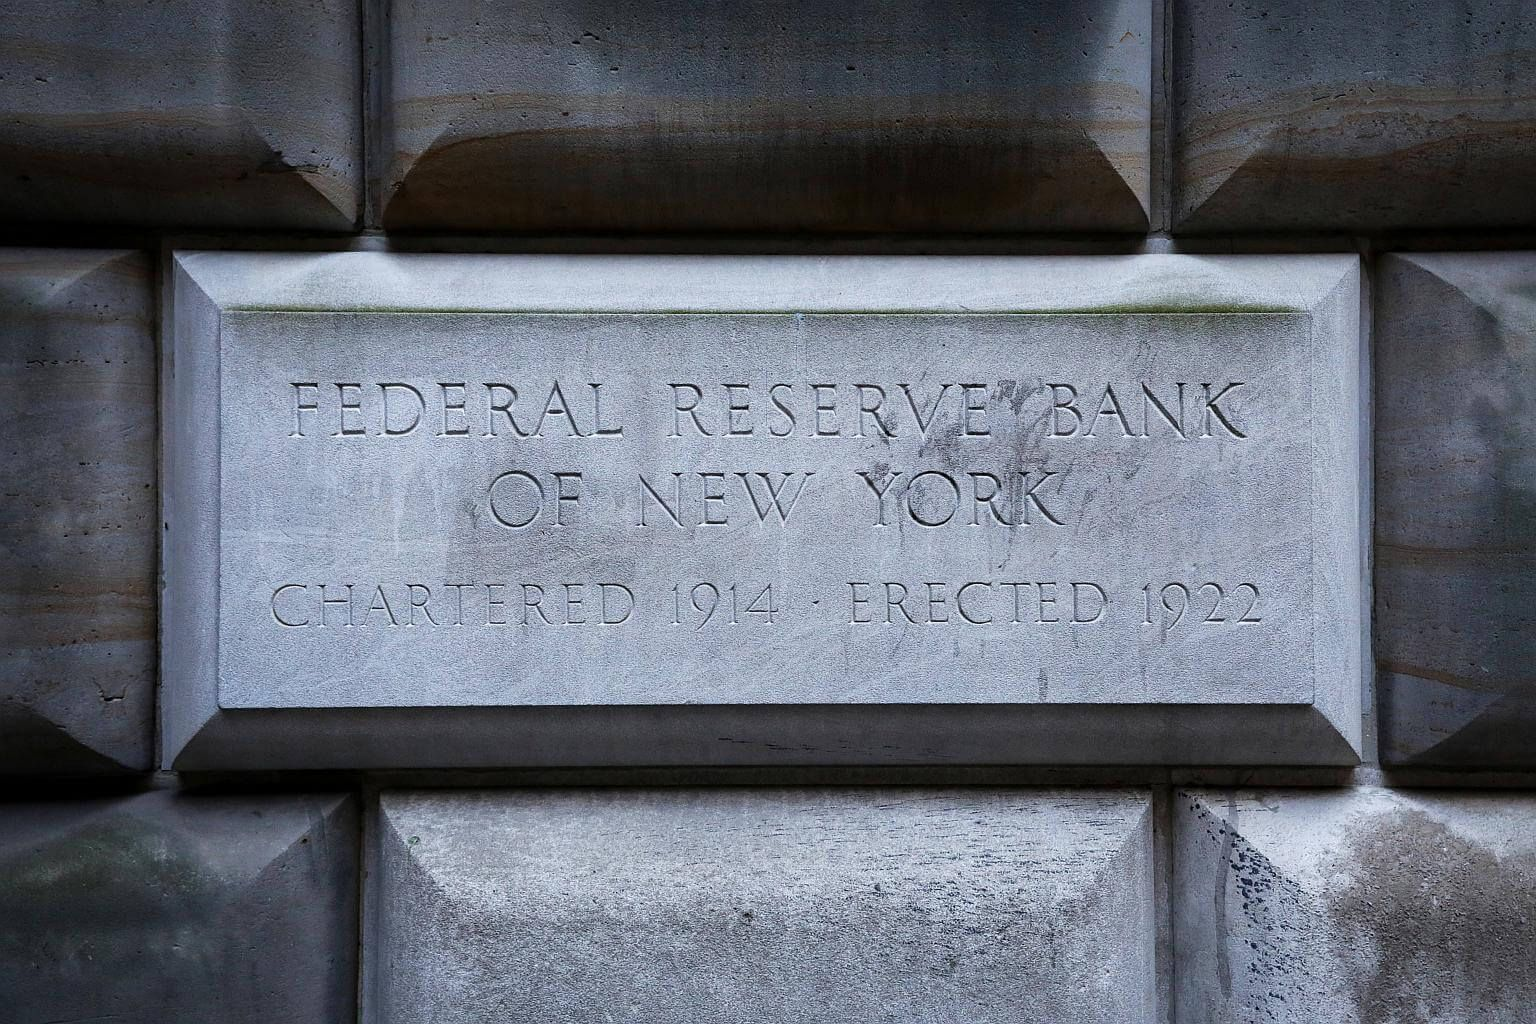 Federal Reserve bank president downplays recession fears